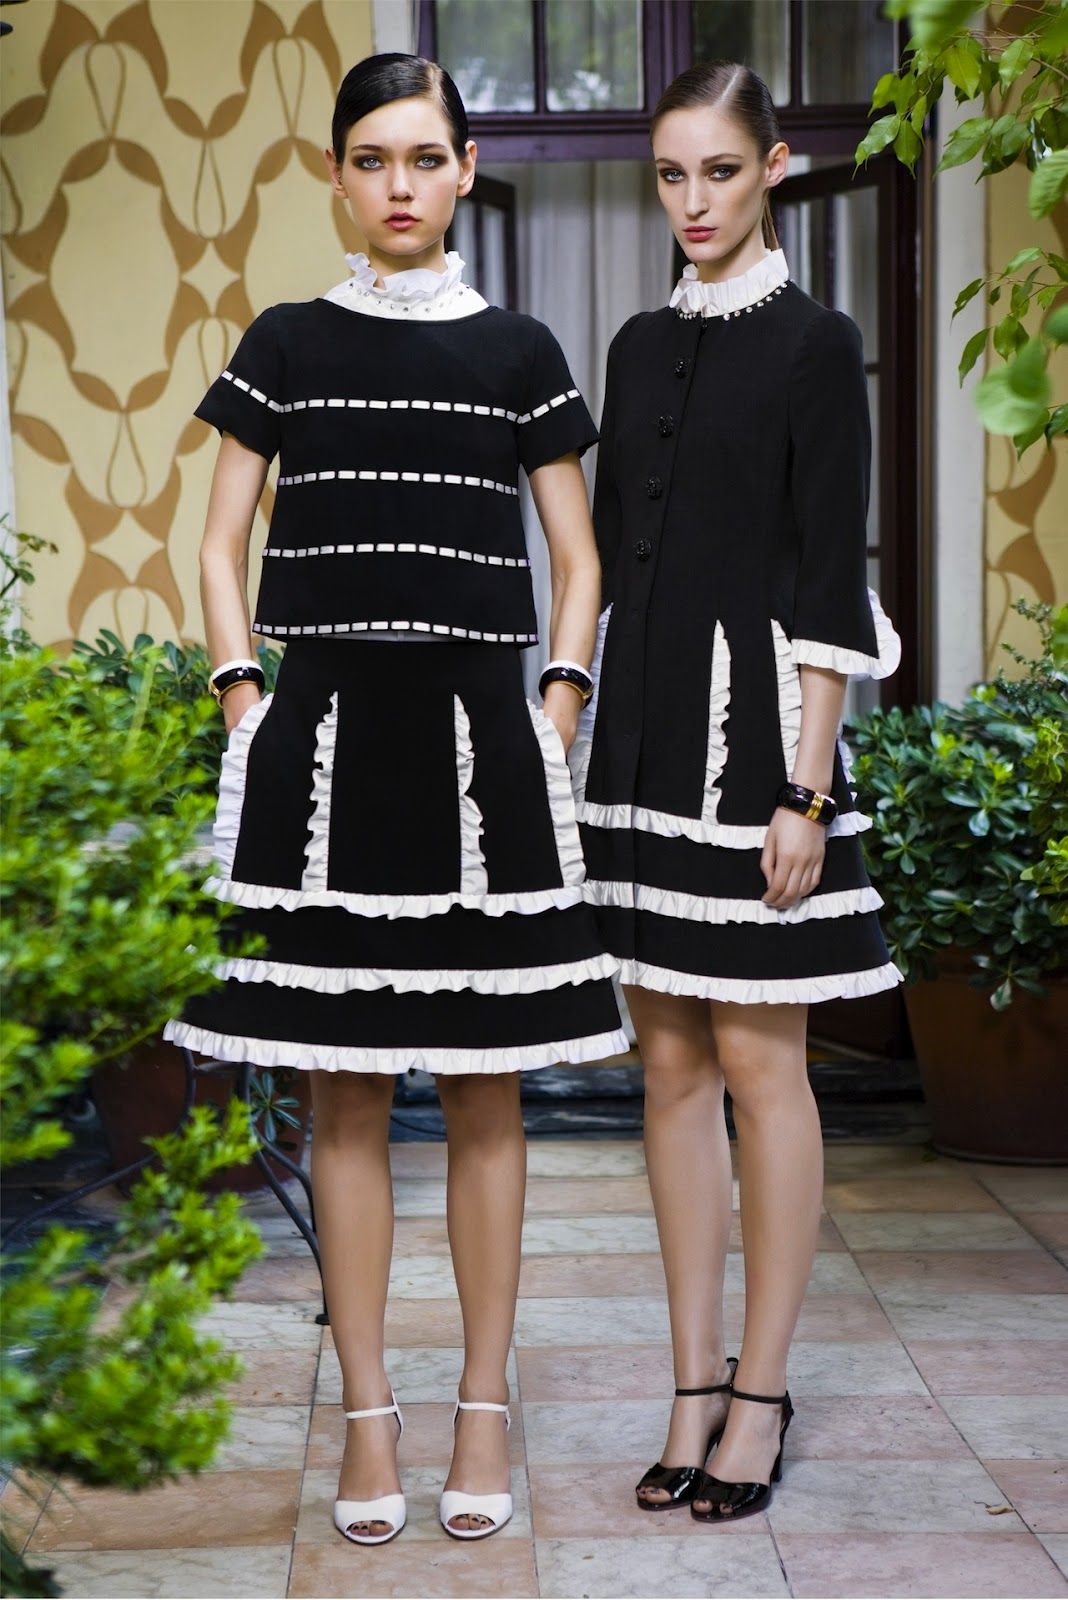 File:Moschino Resort 2013 Black dress.jpg